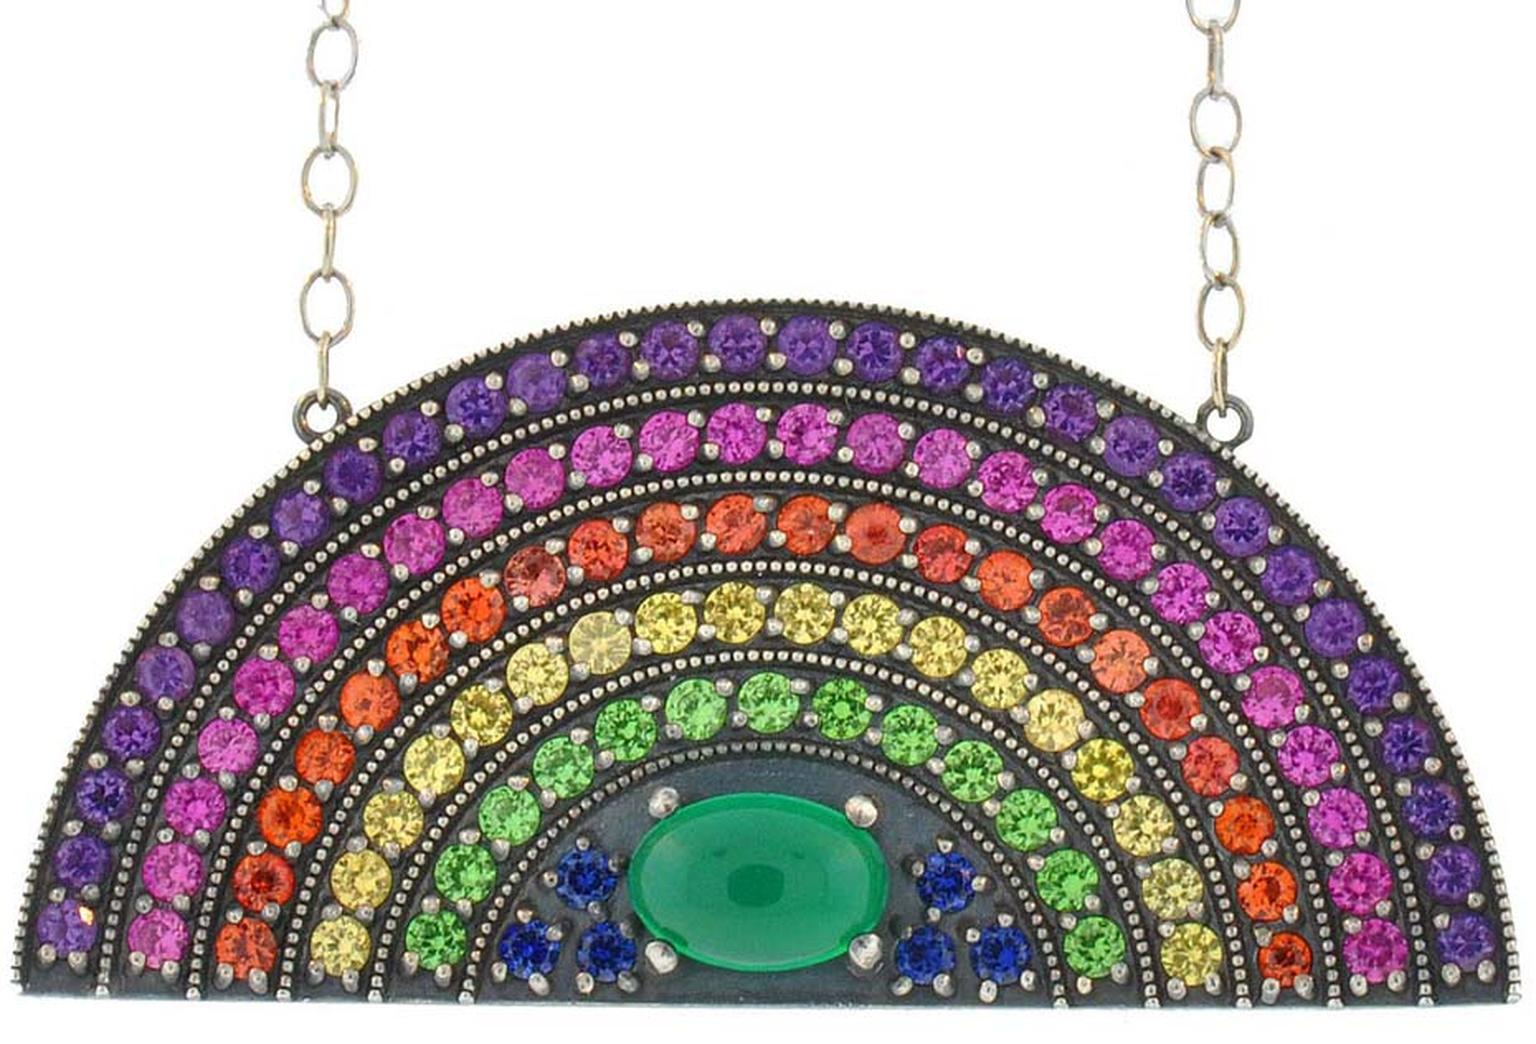 Andrea Fohrman rainbow pendant set with pink, orange, yellow and blue sapphires, amethysts, tsavorites and a green onyx centre.